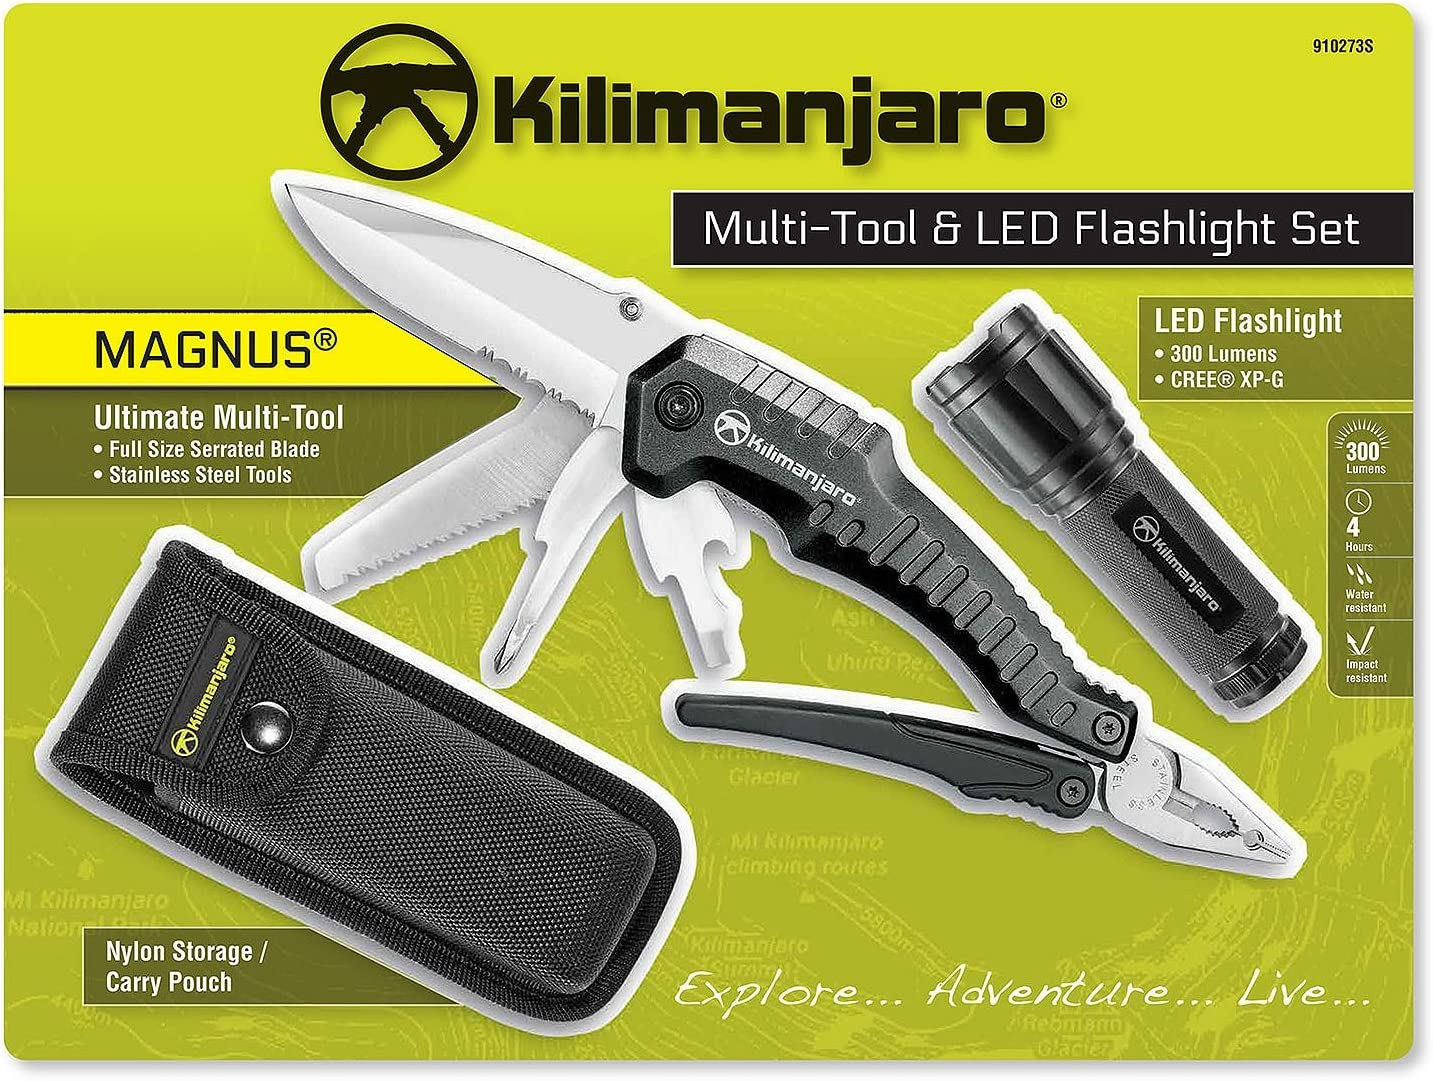 Kilimanjaro Multi-Tool LED Flashlight Set